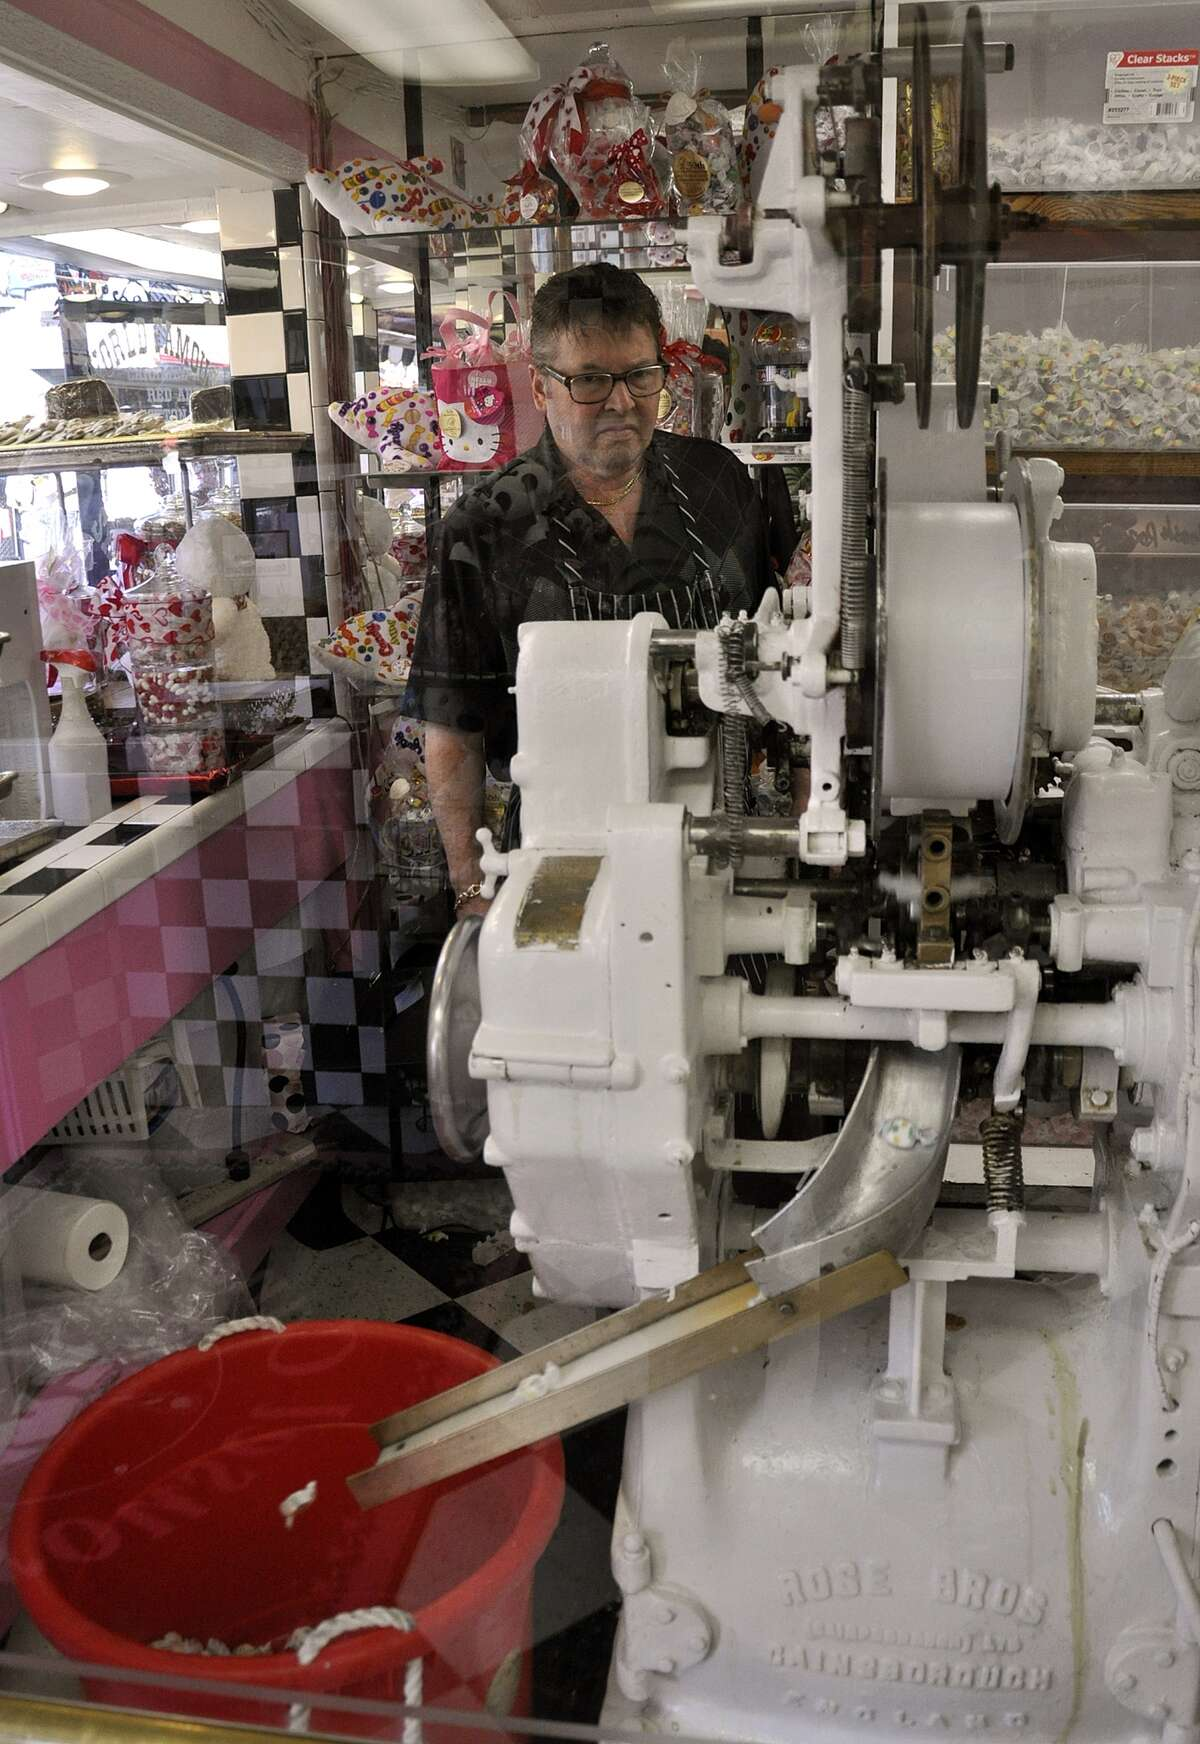 Watching the taffy being extruded, cut and wrapped behind the glass wall opposite the candy counter is a highlight of visiting the shop